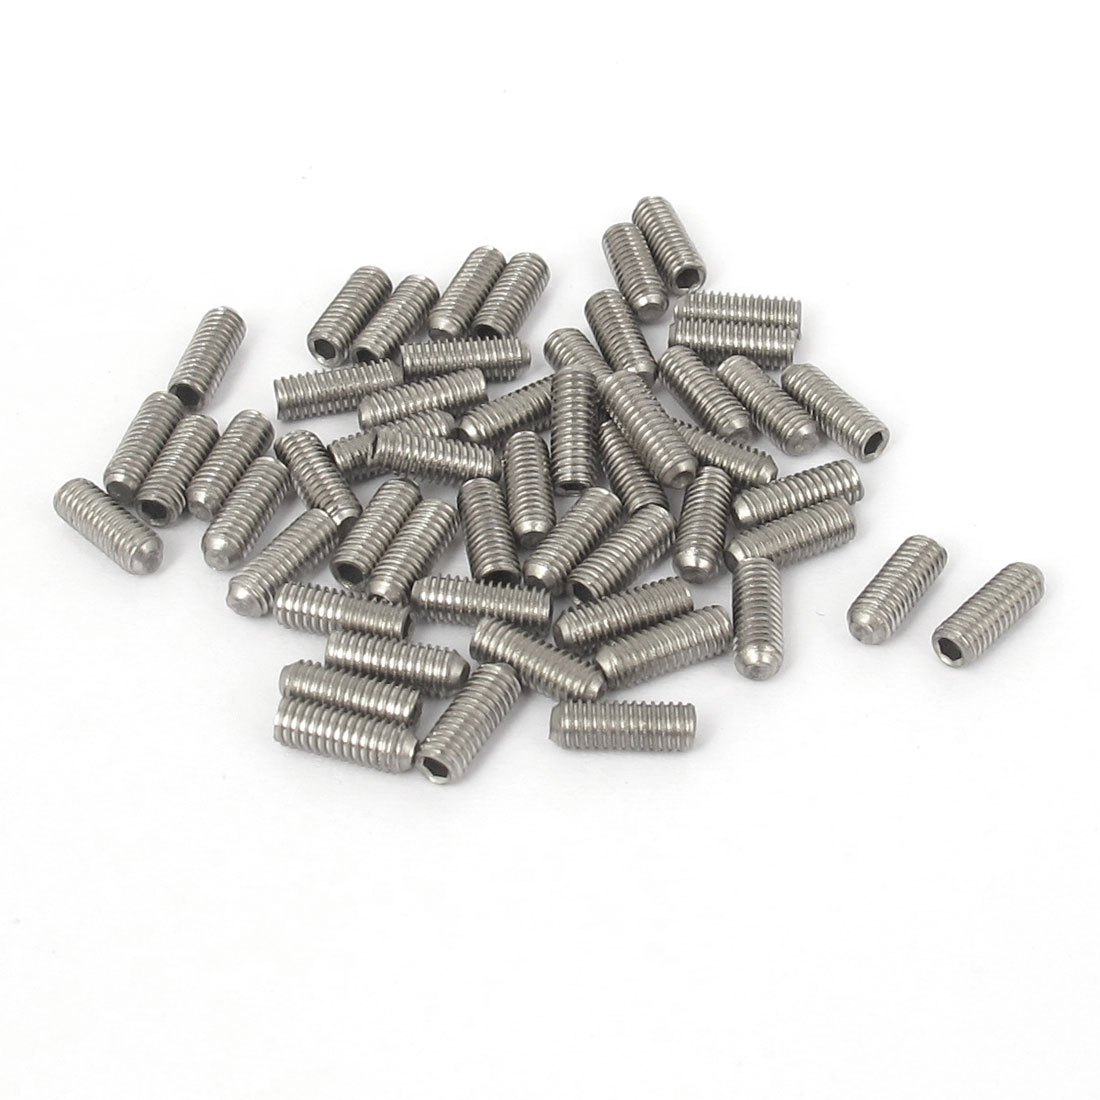 M3x8mm Stainless Steel Hex Socket Set Cap Point Grub Screws Silver Tone 50pcs